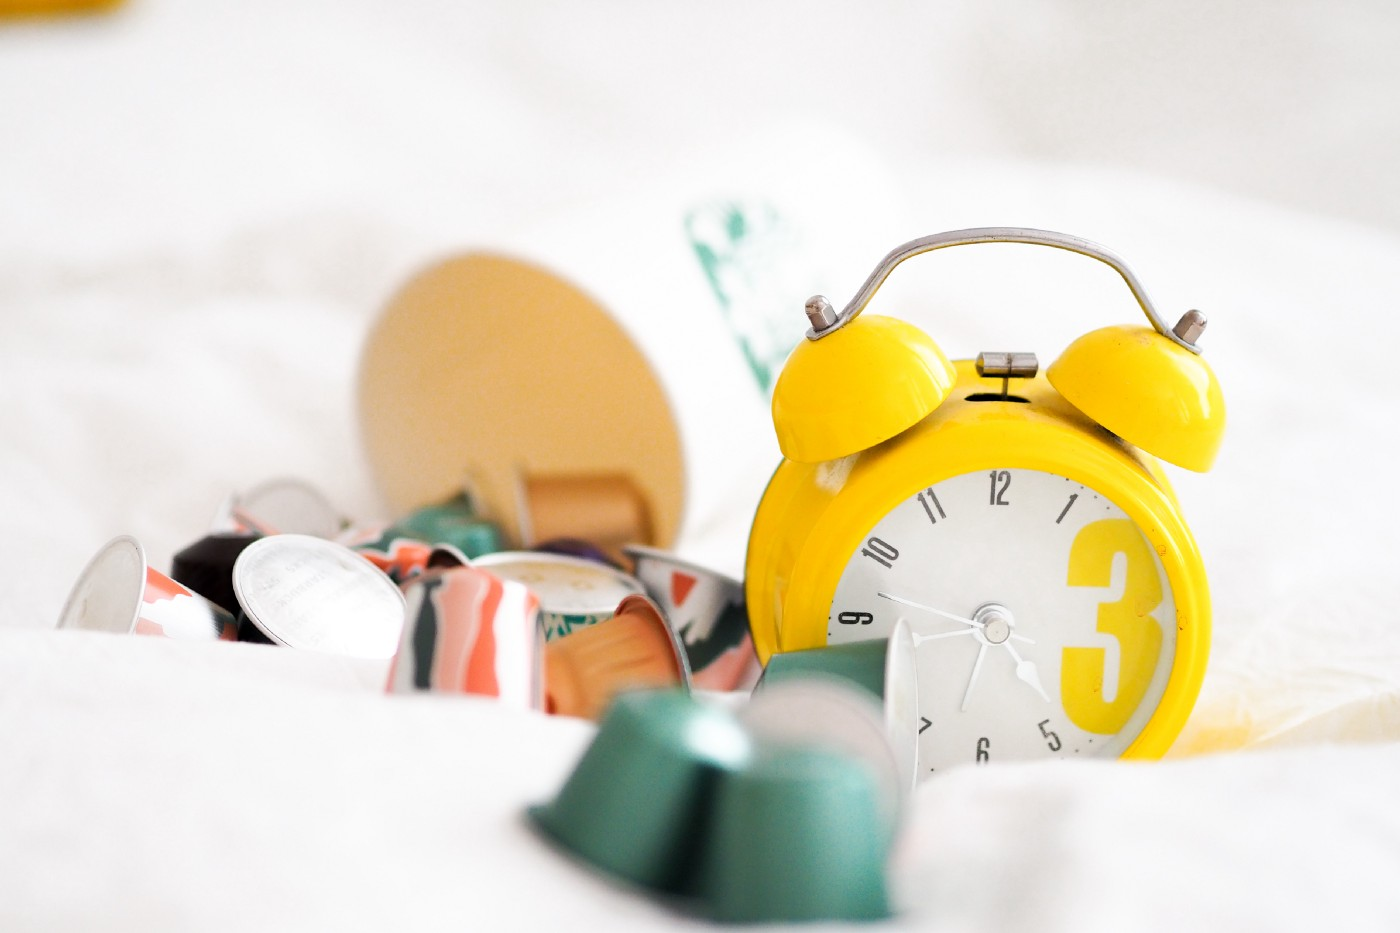 Bright yellow clock amid out of focus items scattered around it.